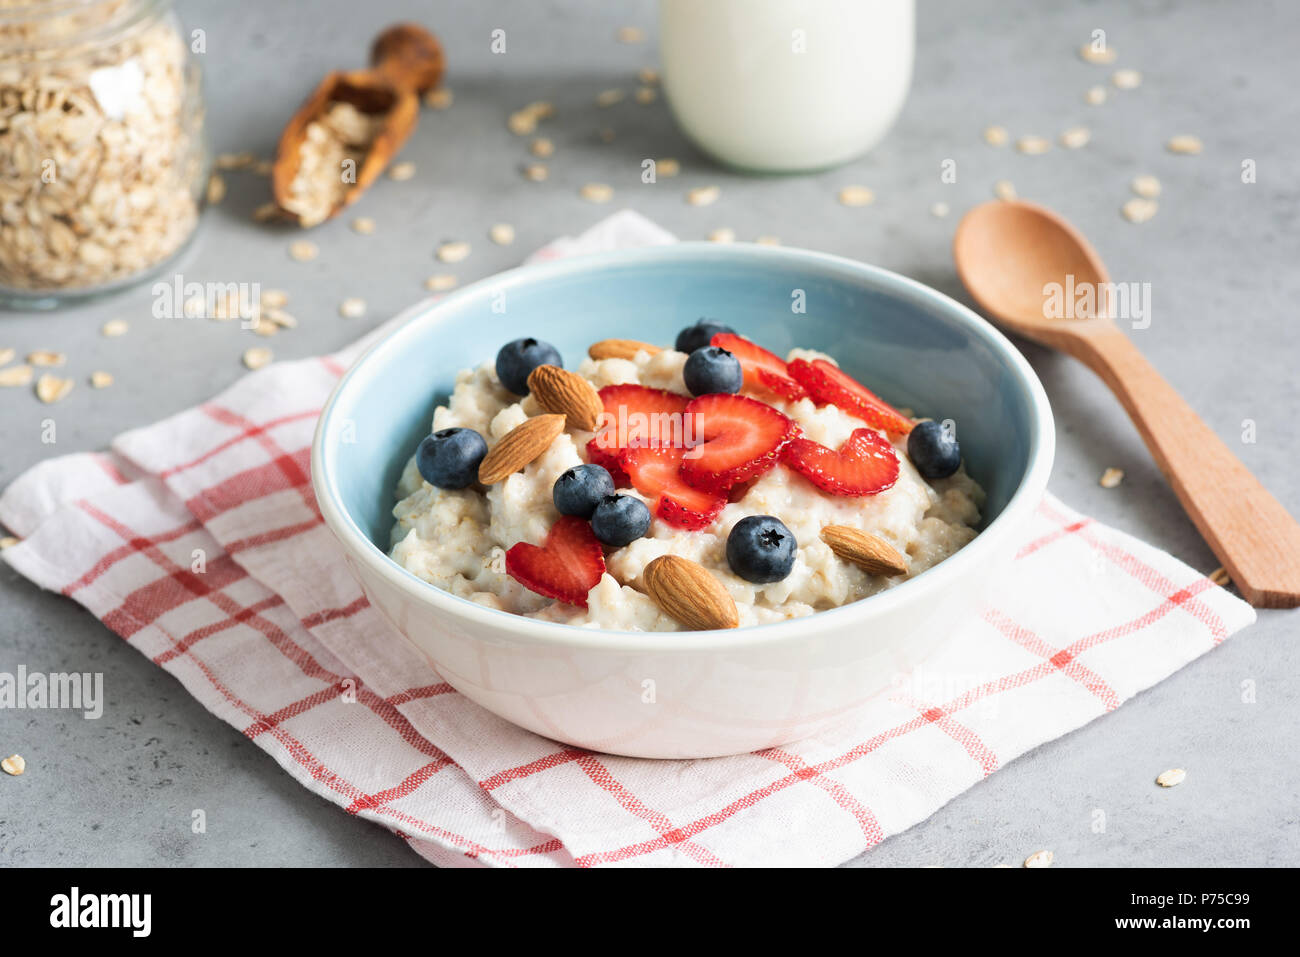 Oatmeal Porridge With Strawberries Blueberries And Almonds In A